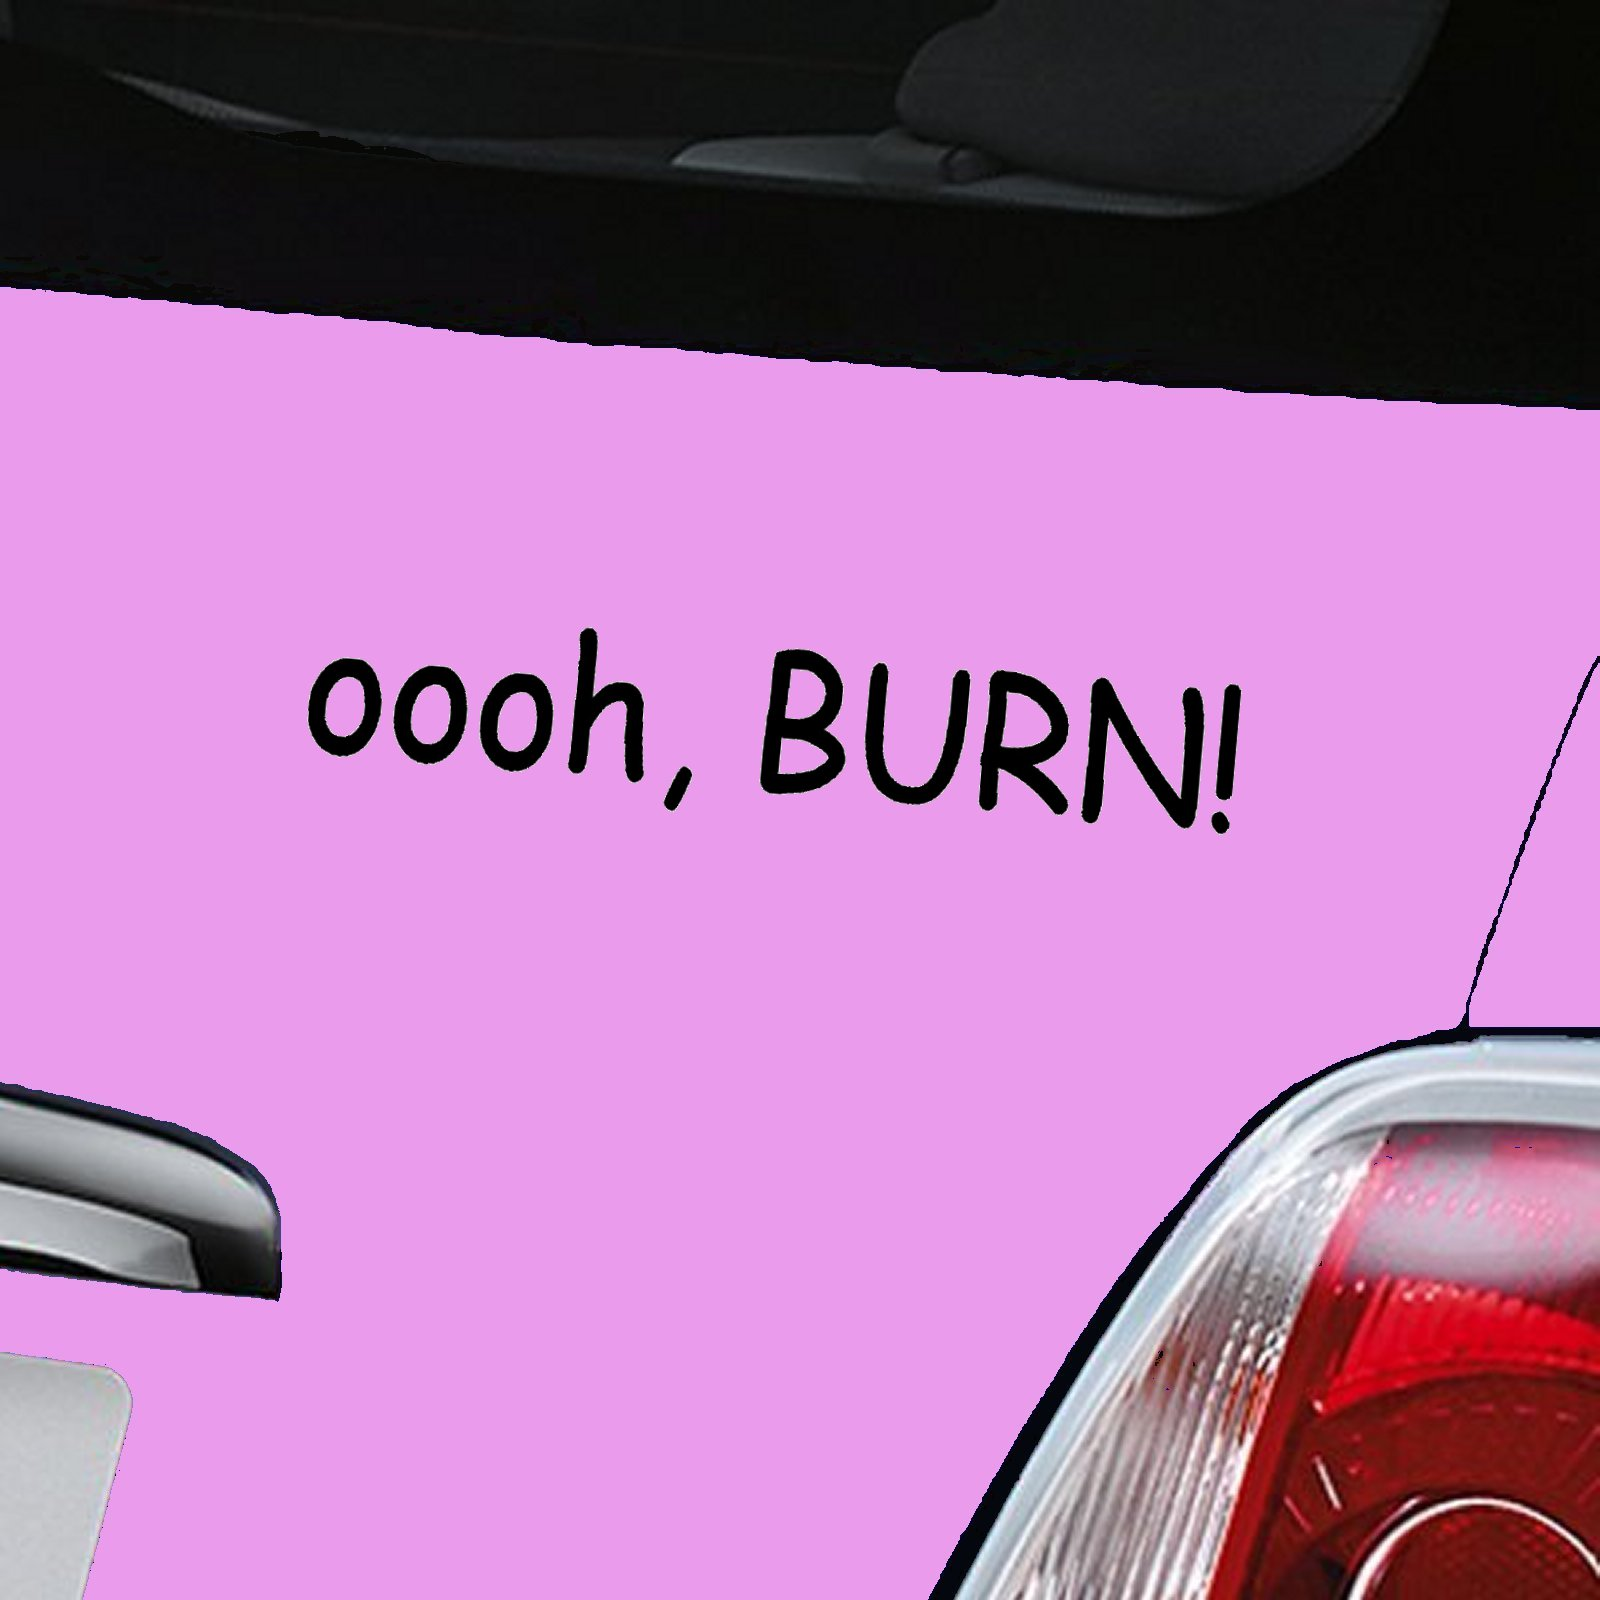 oooh, BURN! Decal - Black